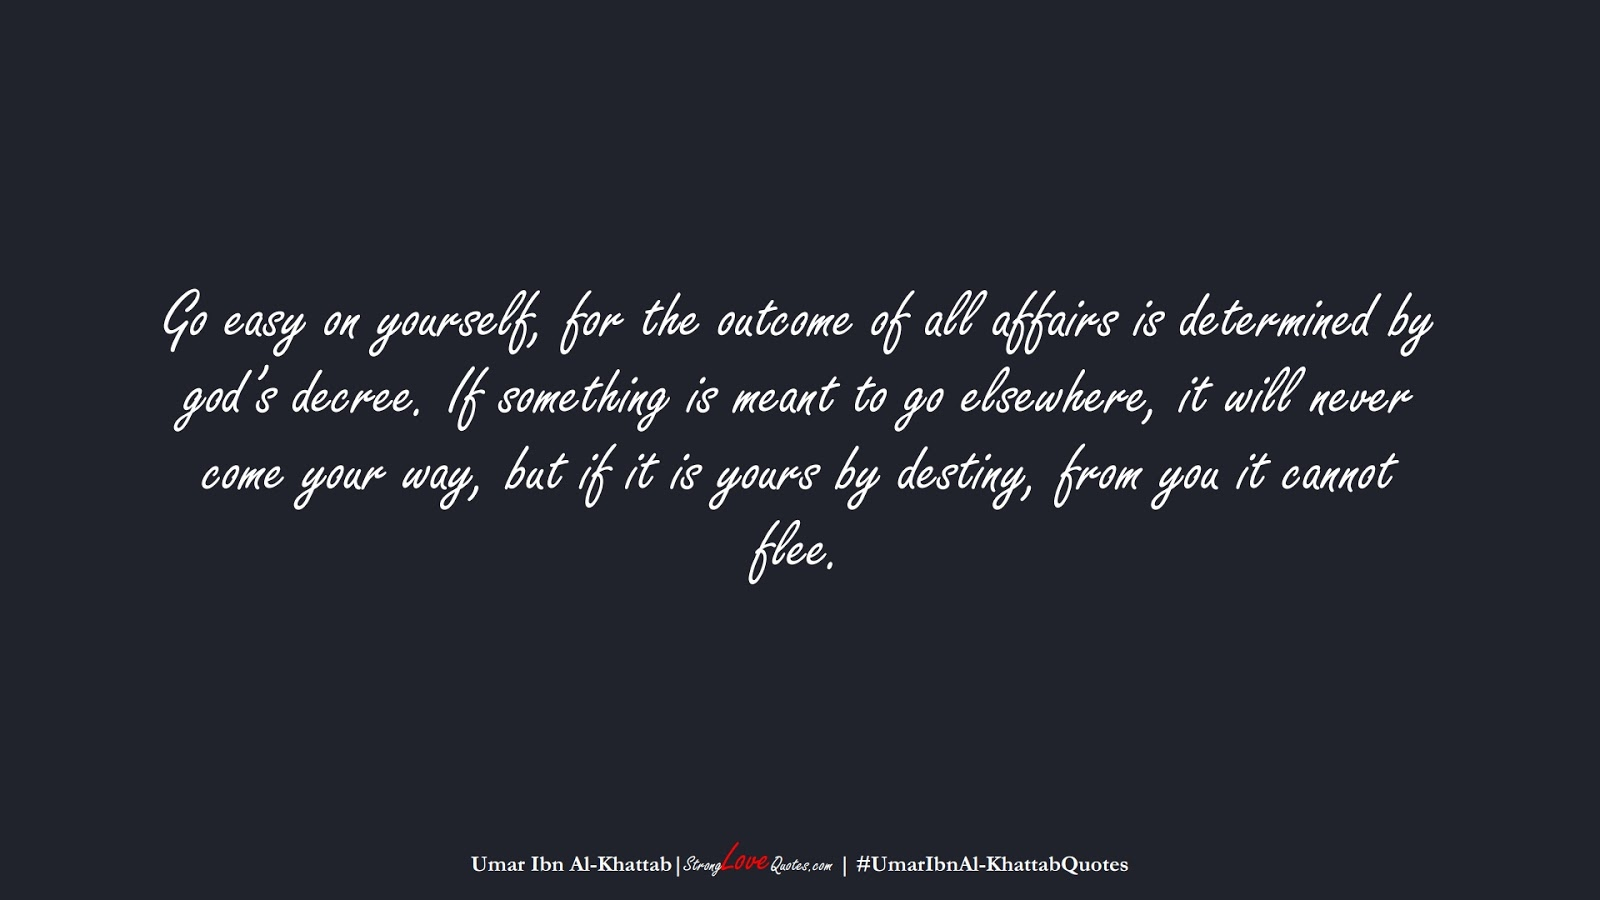 Go easy on yourself, for the outcome of all affairs is determined by god's decree. If something is meant to go elsewhere, it will never come your way, but if it is yours by destiny, from you it cannot flee. (Umar Ibn Al-Khattab);  #UmarIbnAl-KhattabQuotes